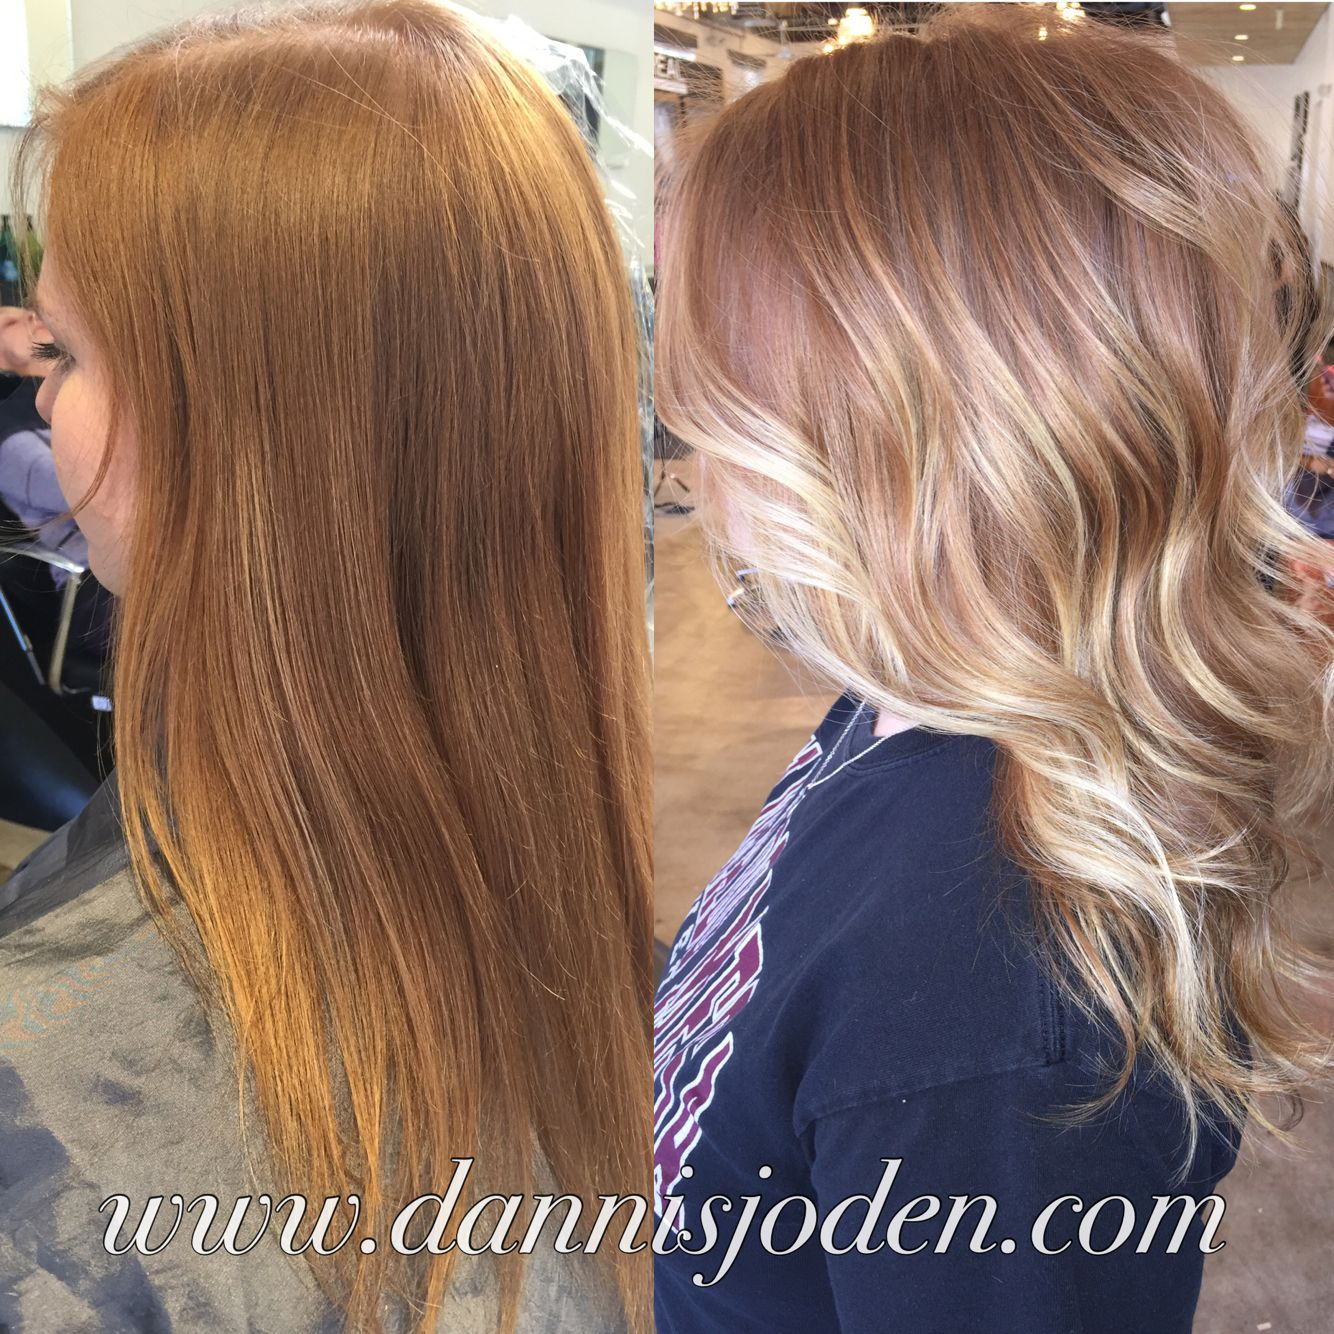 Natural Red Head With Bright Platinum Balayage Hair By Danni In Denver Co Natural Red Hair Balayage Red Blonde Hair